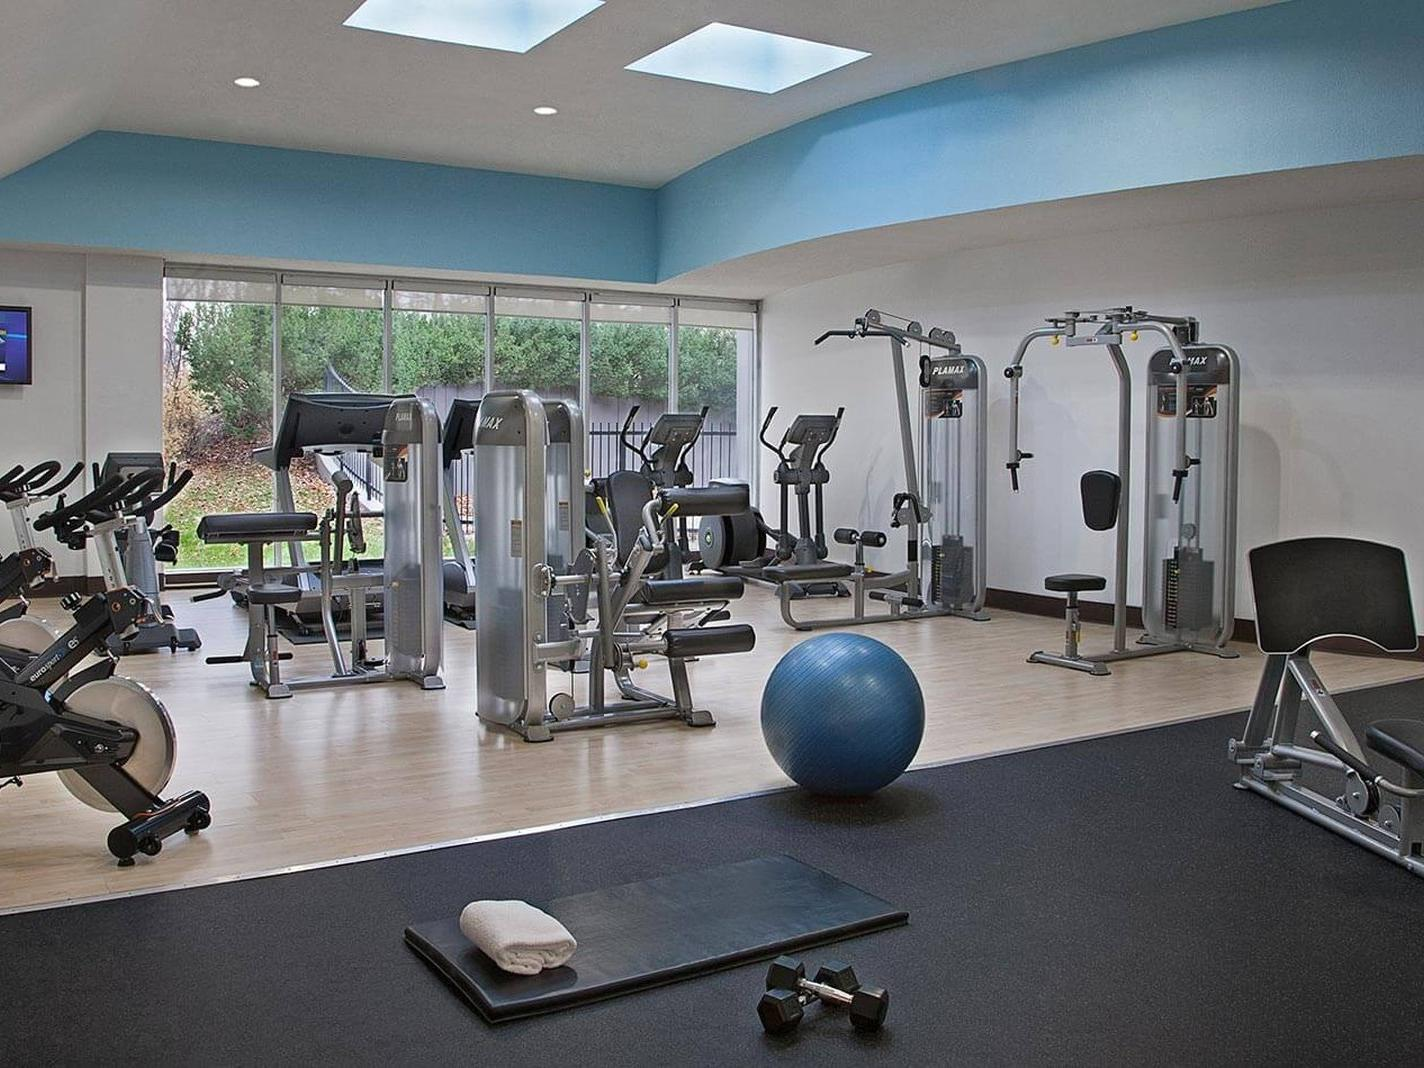 Workout equipment in hotel gym